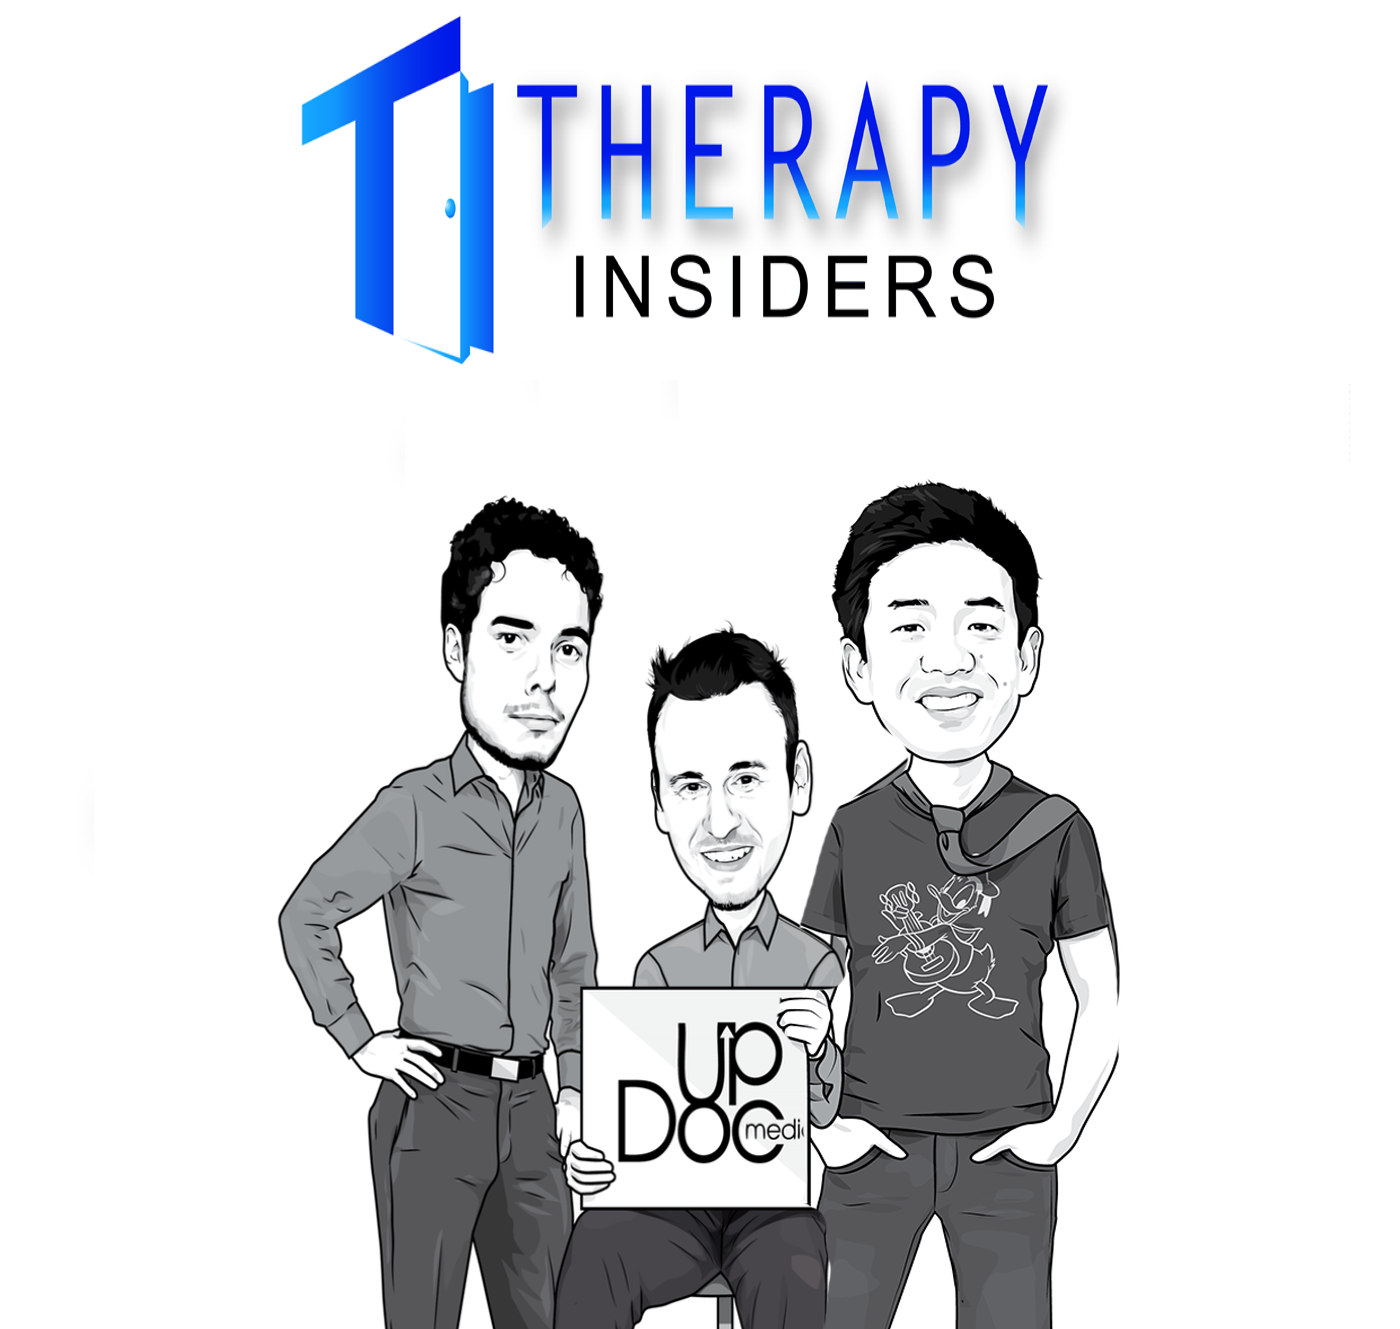 The Therapy Insiders podcast with Dr. Gene Shirokobrod, Dr. Joe Palmer, Dr. Ben Fung — talking the business of rehab therapy and beyond along with interviews of best selling authors and industry leaders, inside and outside of the healthcare industry.